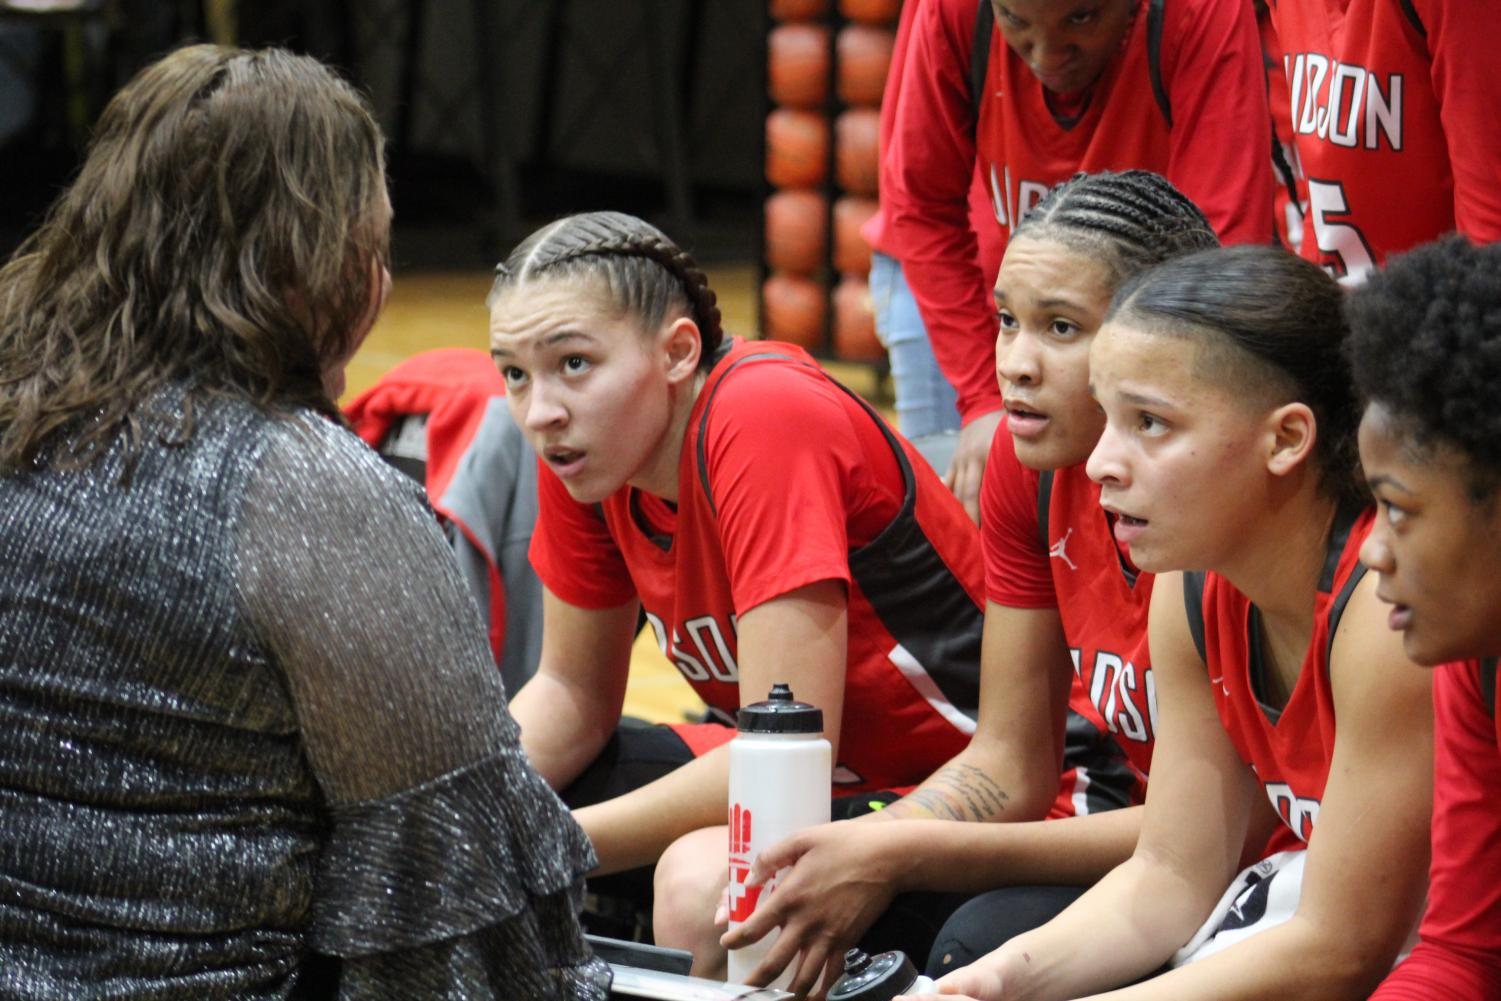 Coach Corrales instructs her starting five during a timeout. Rockets went on to win 63-46.